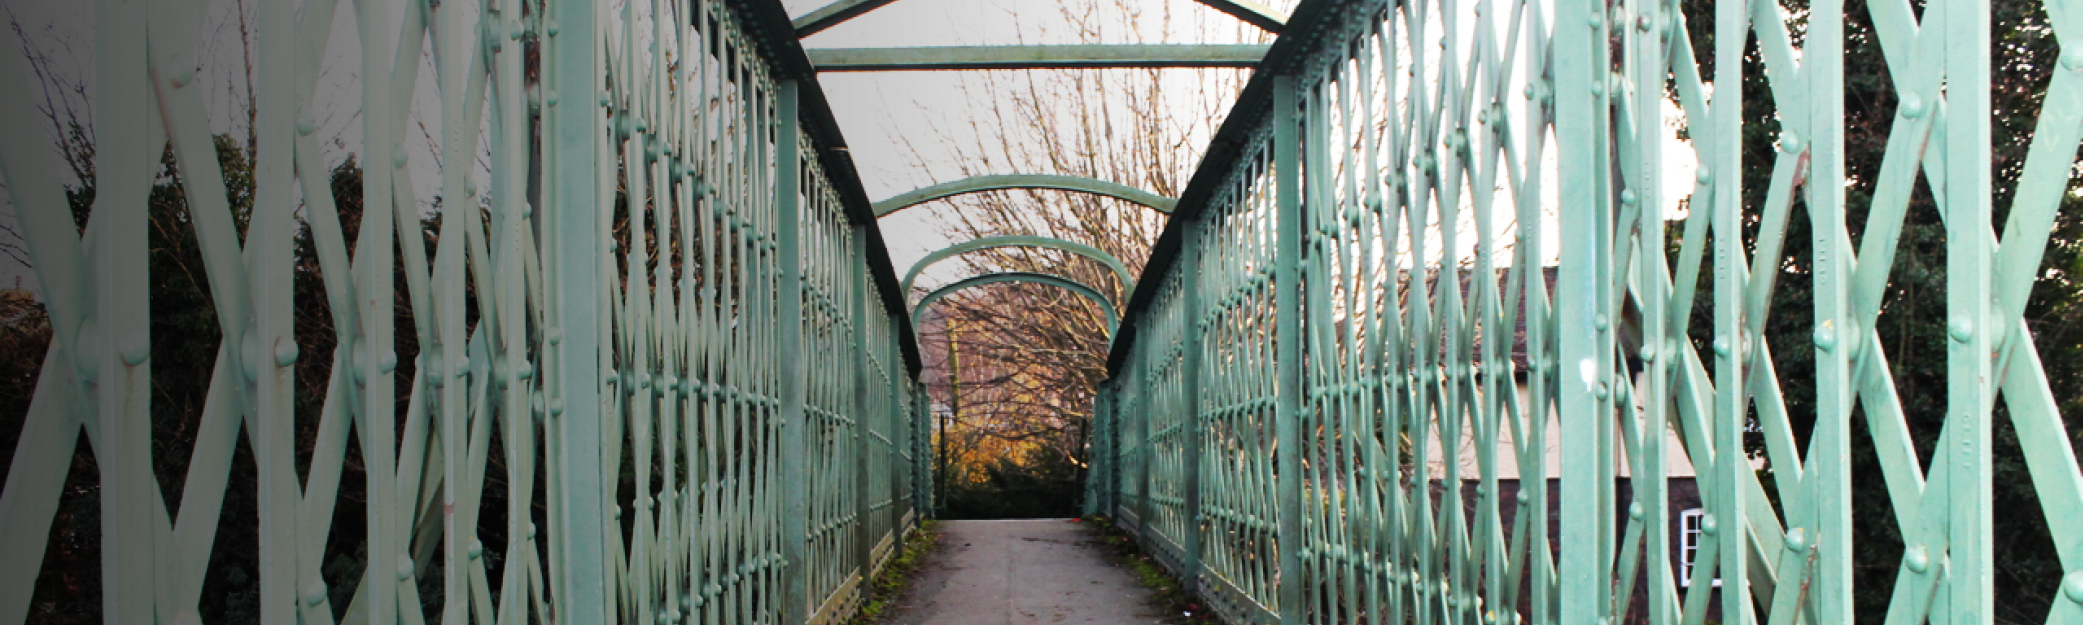 Foot bridge over the railway facing New Road